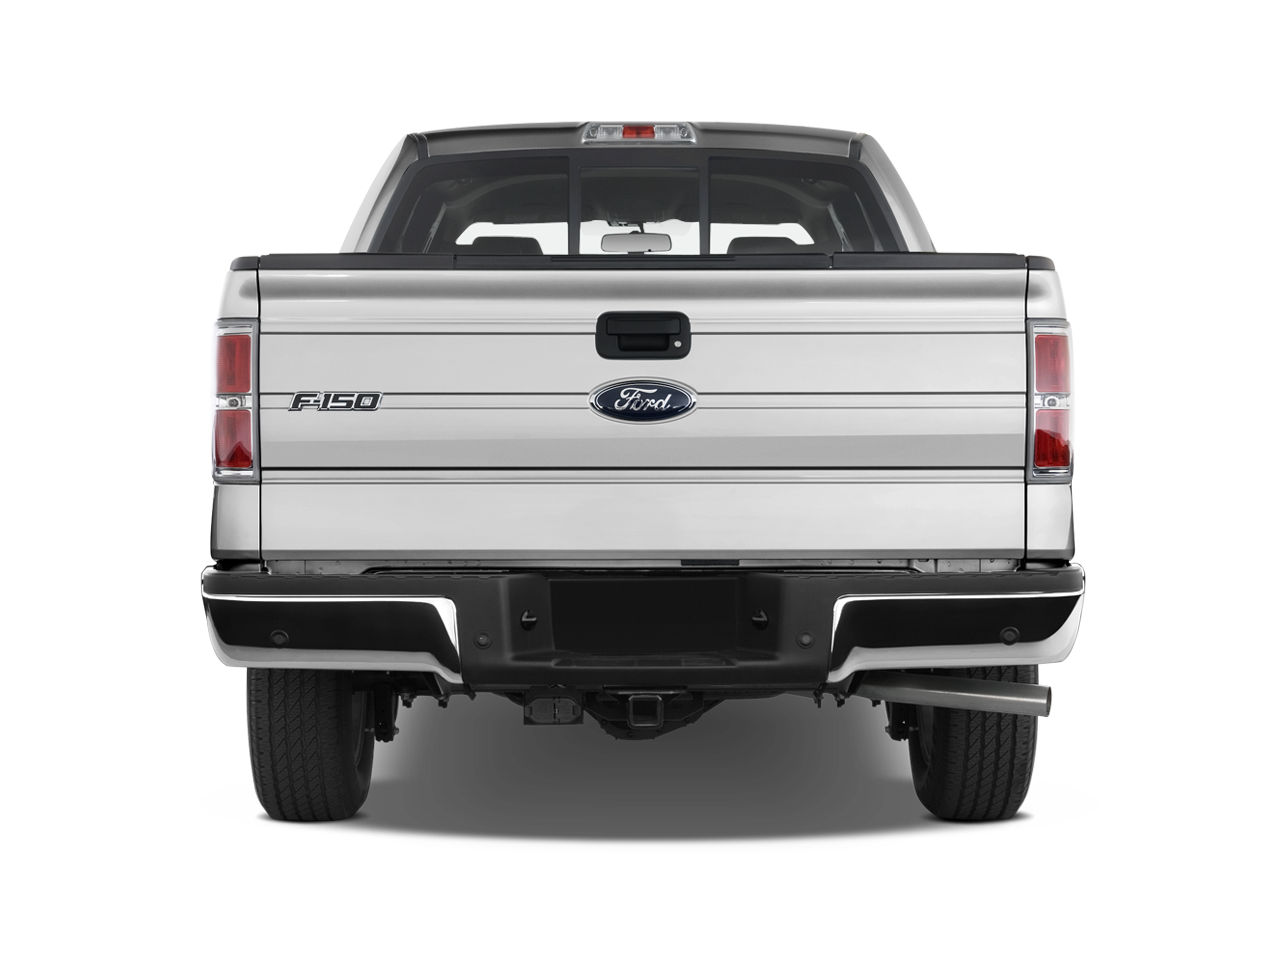 2009 Ford F 150 Platinum Lariat 4x4 Ford Fullsize Pickup Truck Review Automobile Magazine